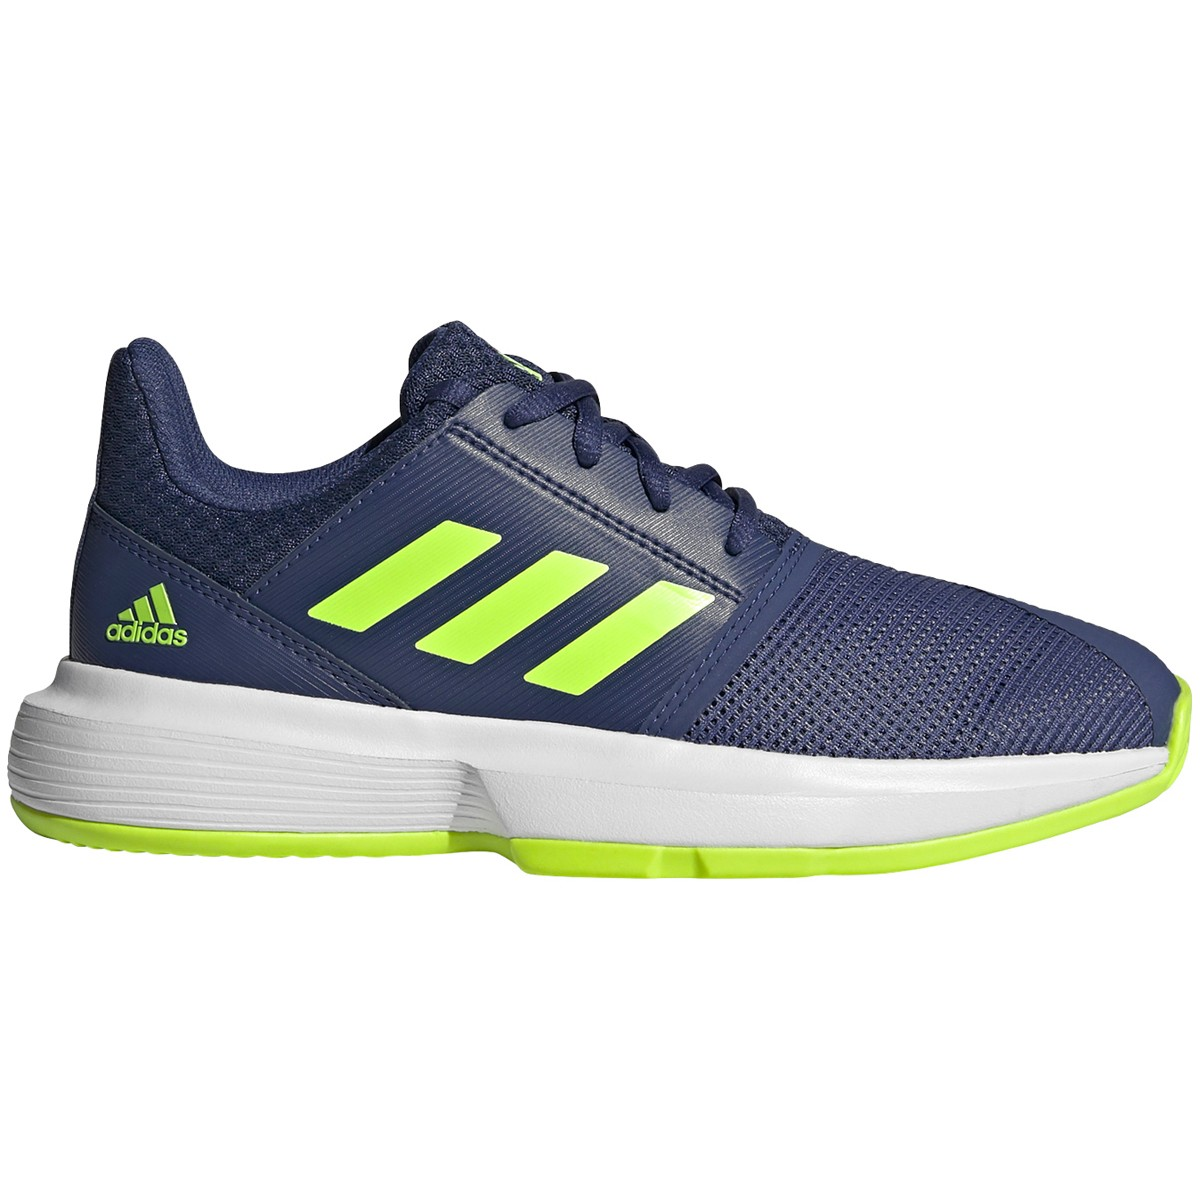 JUNIOR ADIDAS COURTJAM XJ ALL COURT SHOES